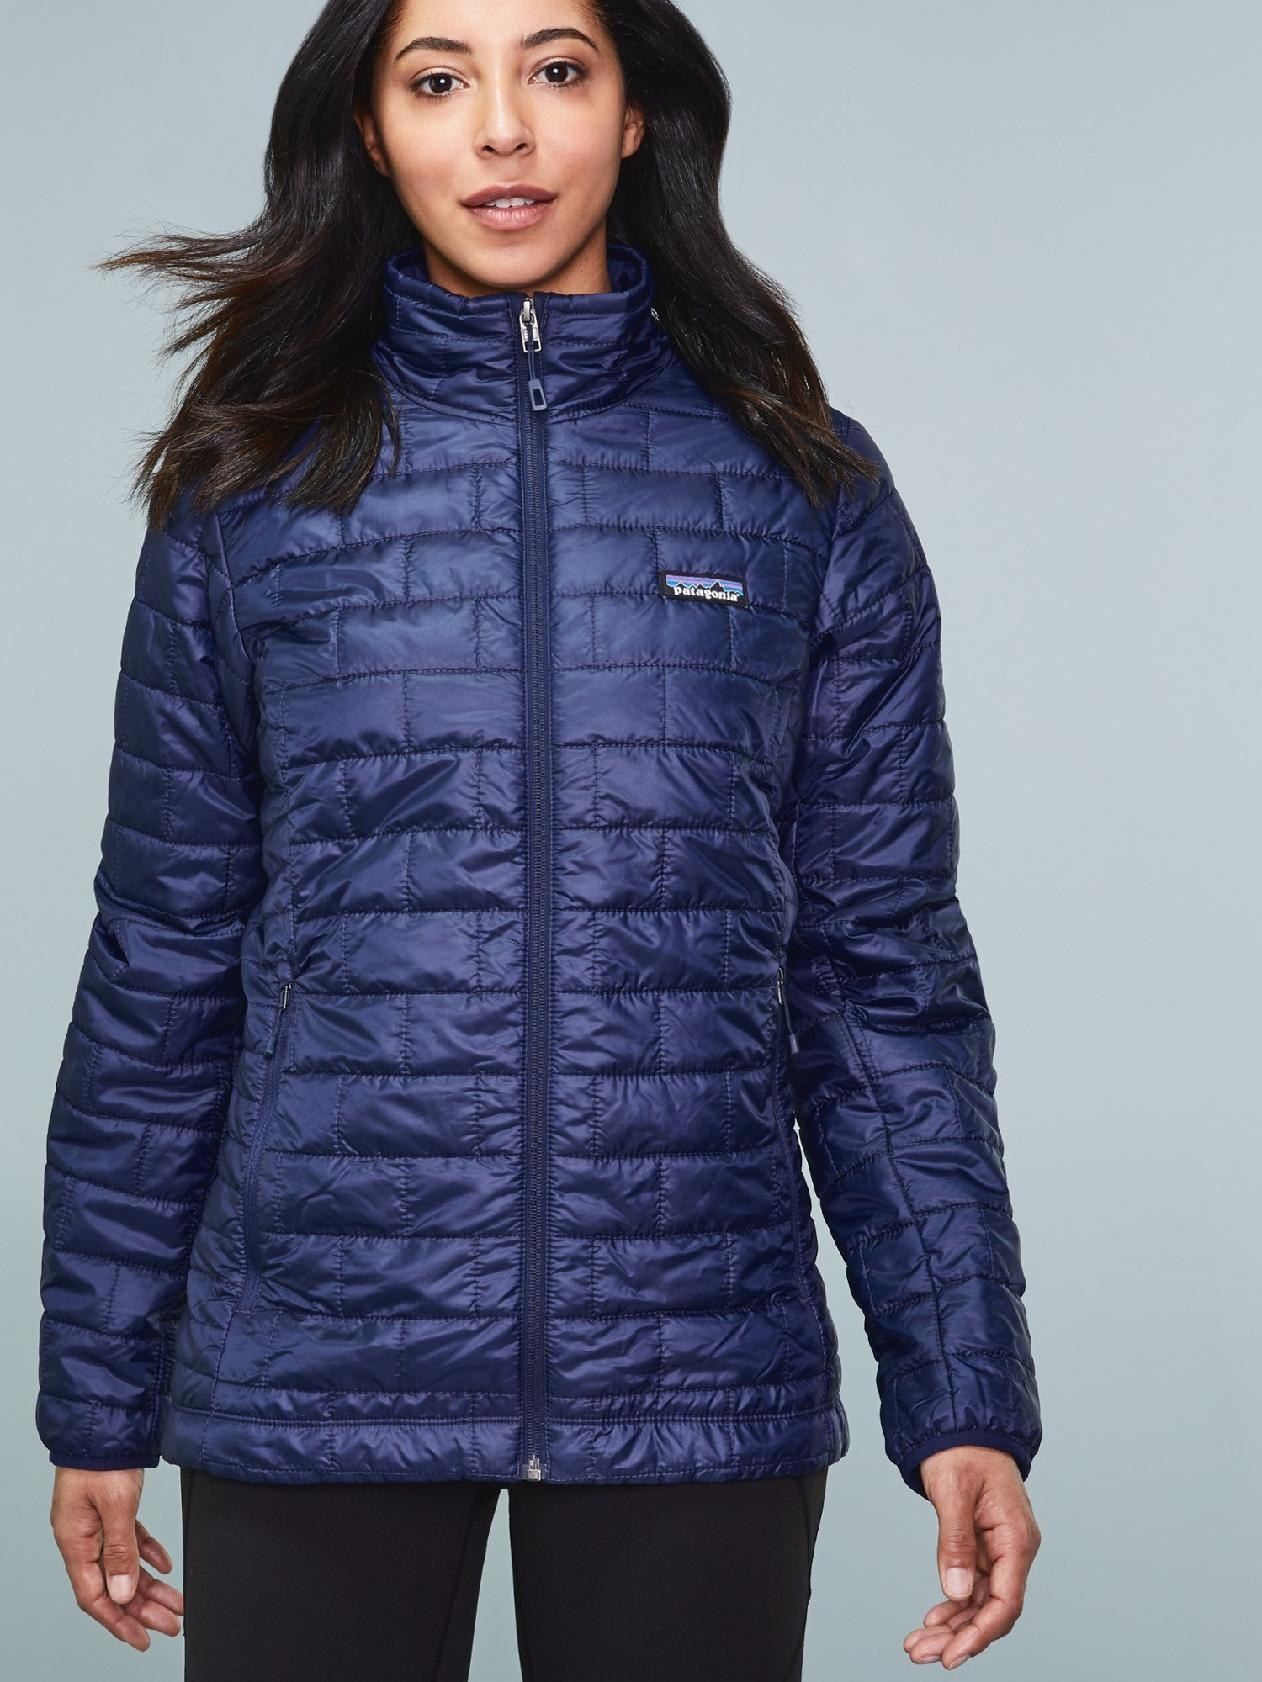 A model wearing the Patagonia Nano Puff Jacket in blue